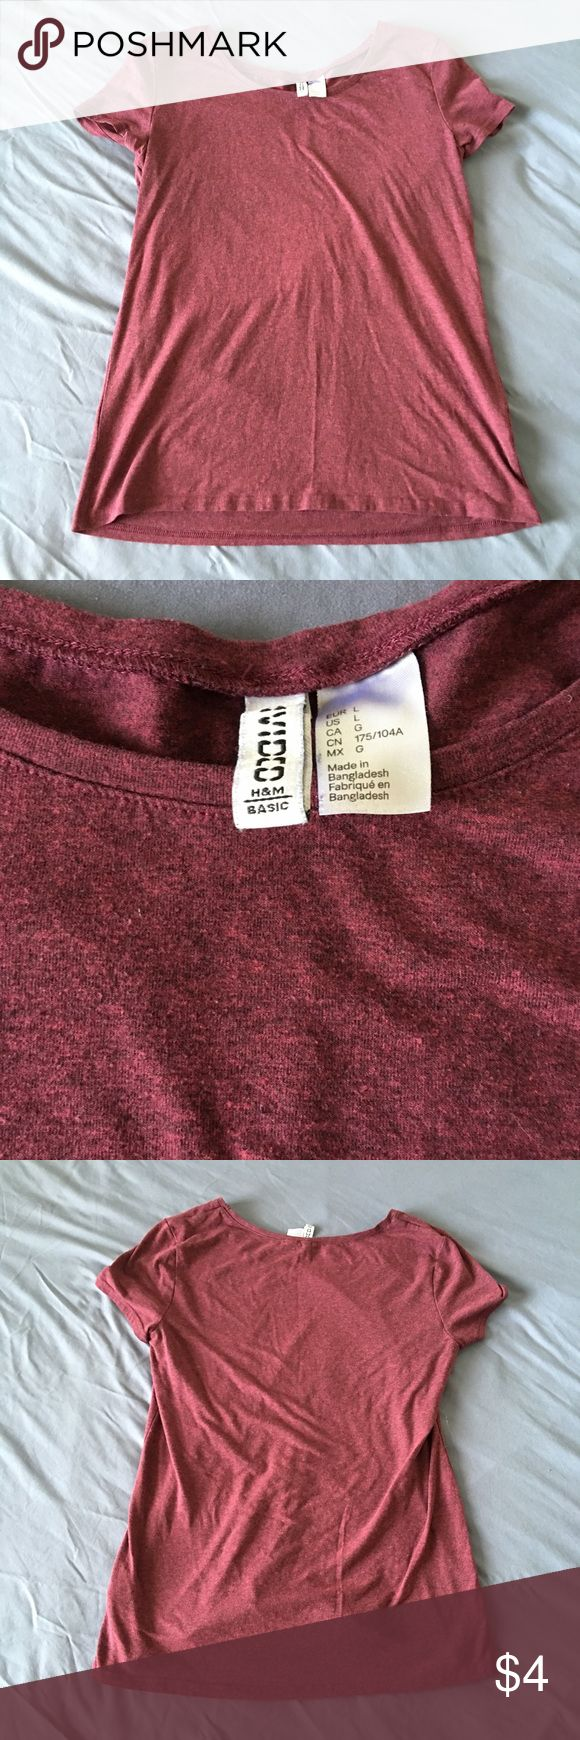 H&M Divided basics tee FINAL SALE: MUST BE GONE BY THE WEEKEND✨✨✨Burgundy basic tee from H&M H&M Tops Tees - Short Sleeve